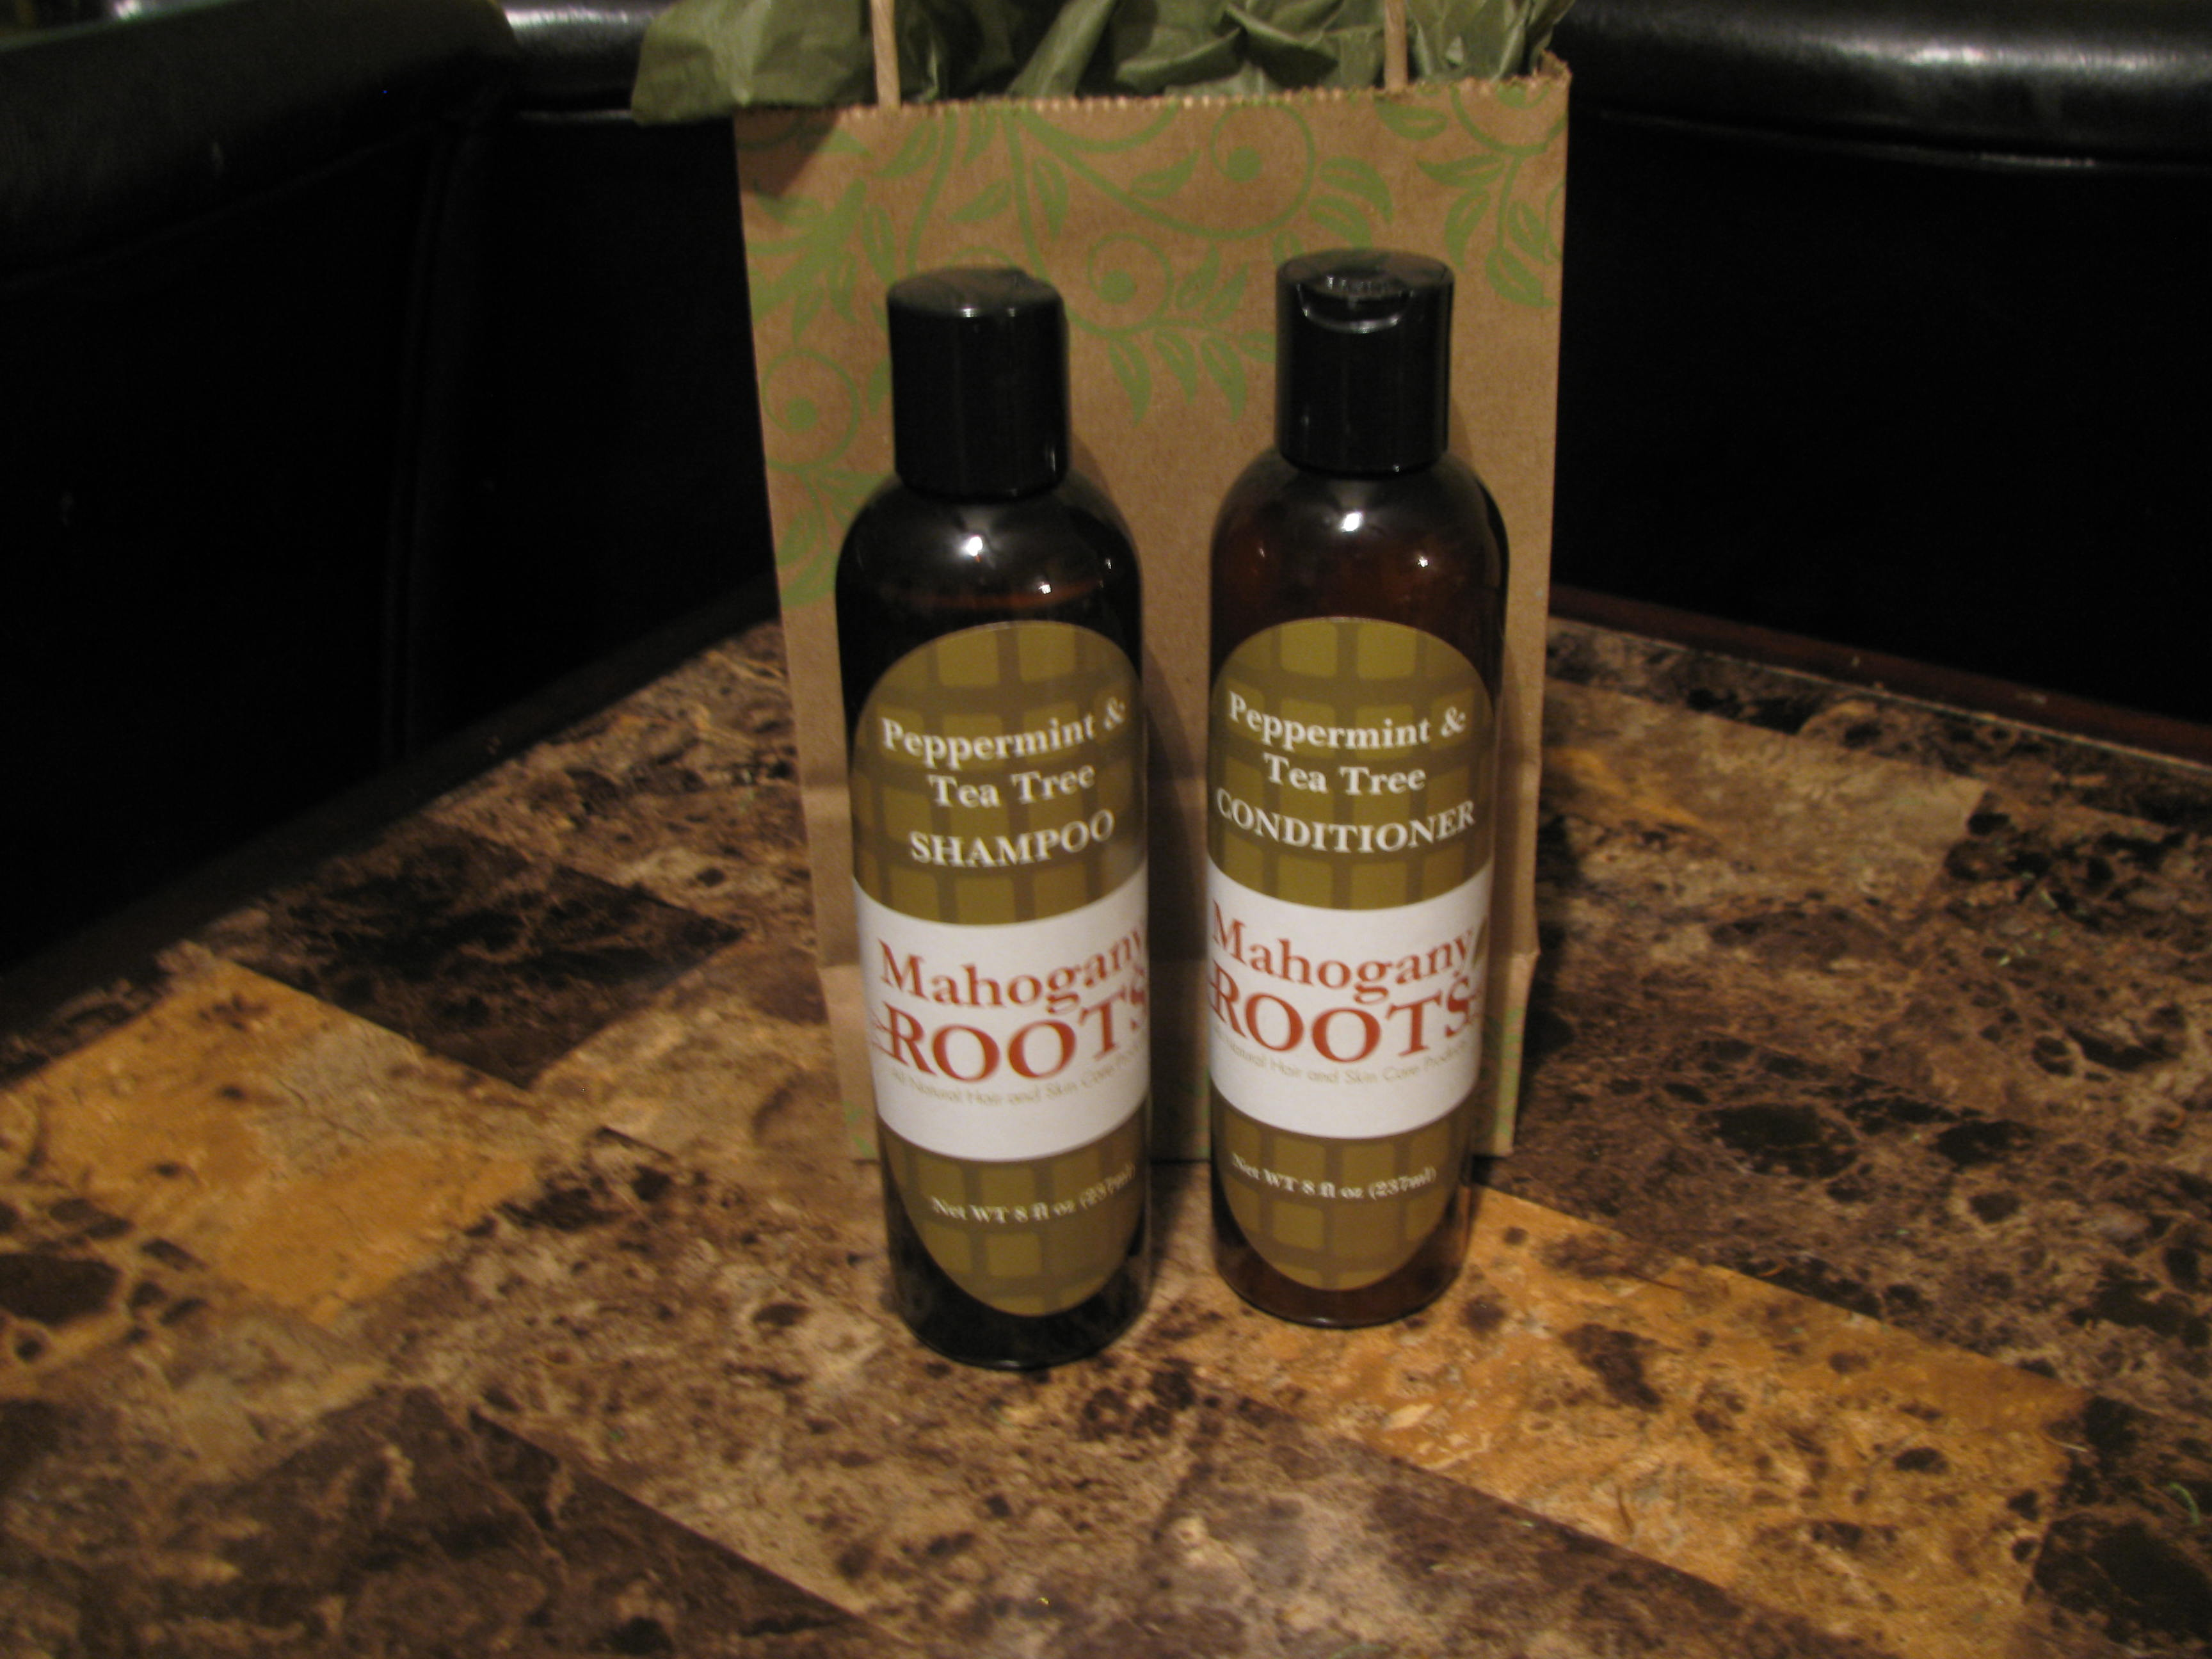 Peppermint and Tea Tree Shampoo